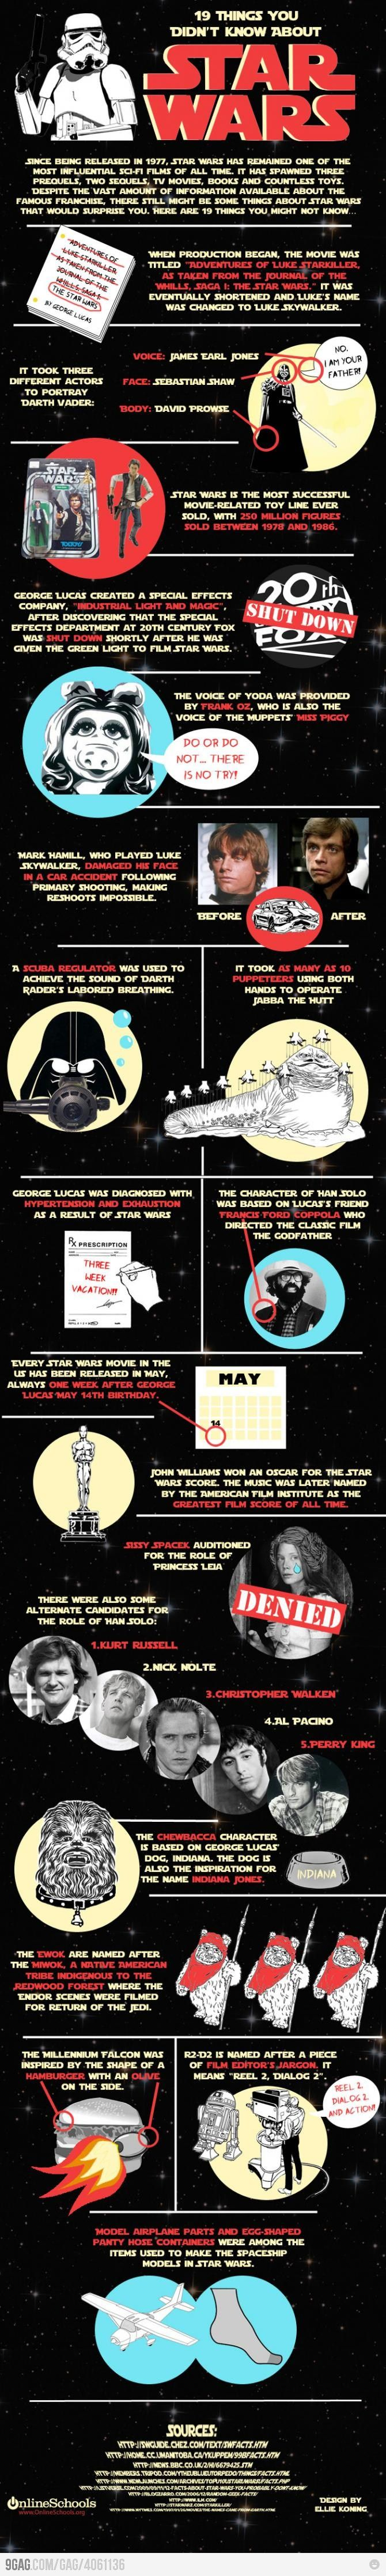 19 Things You Didn't Know About Star Wars - well you probably know most of thee, but I bet there are a few new facts.